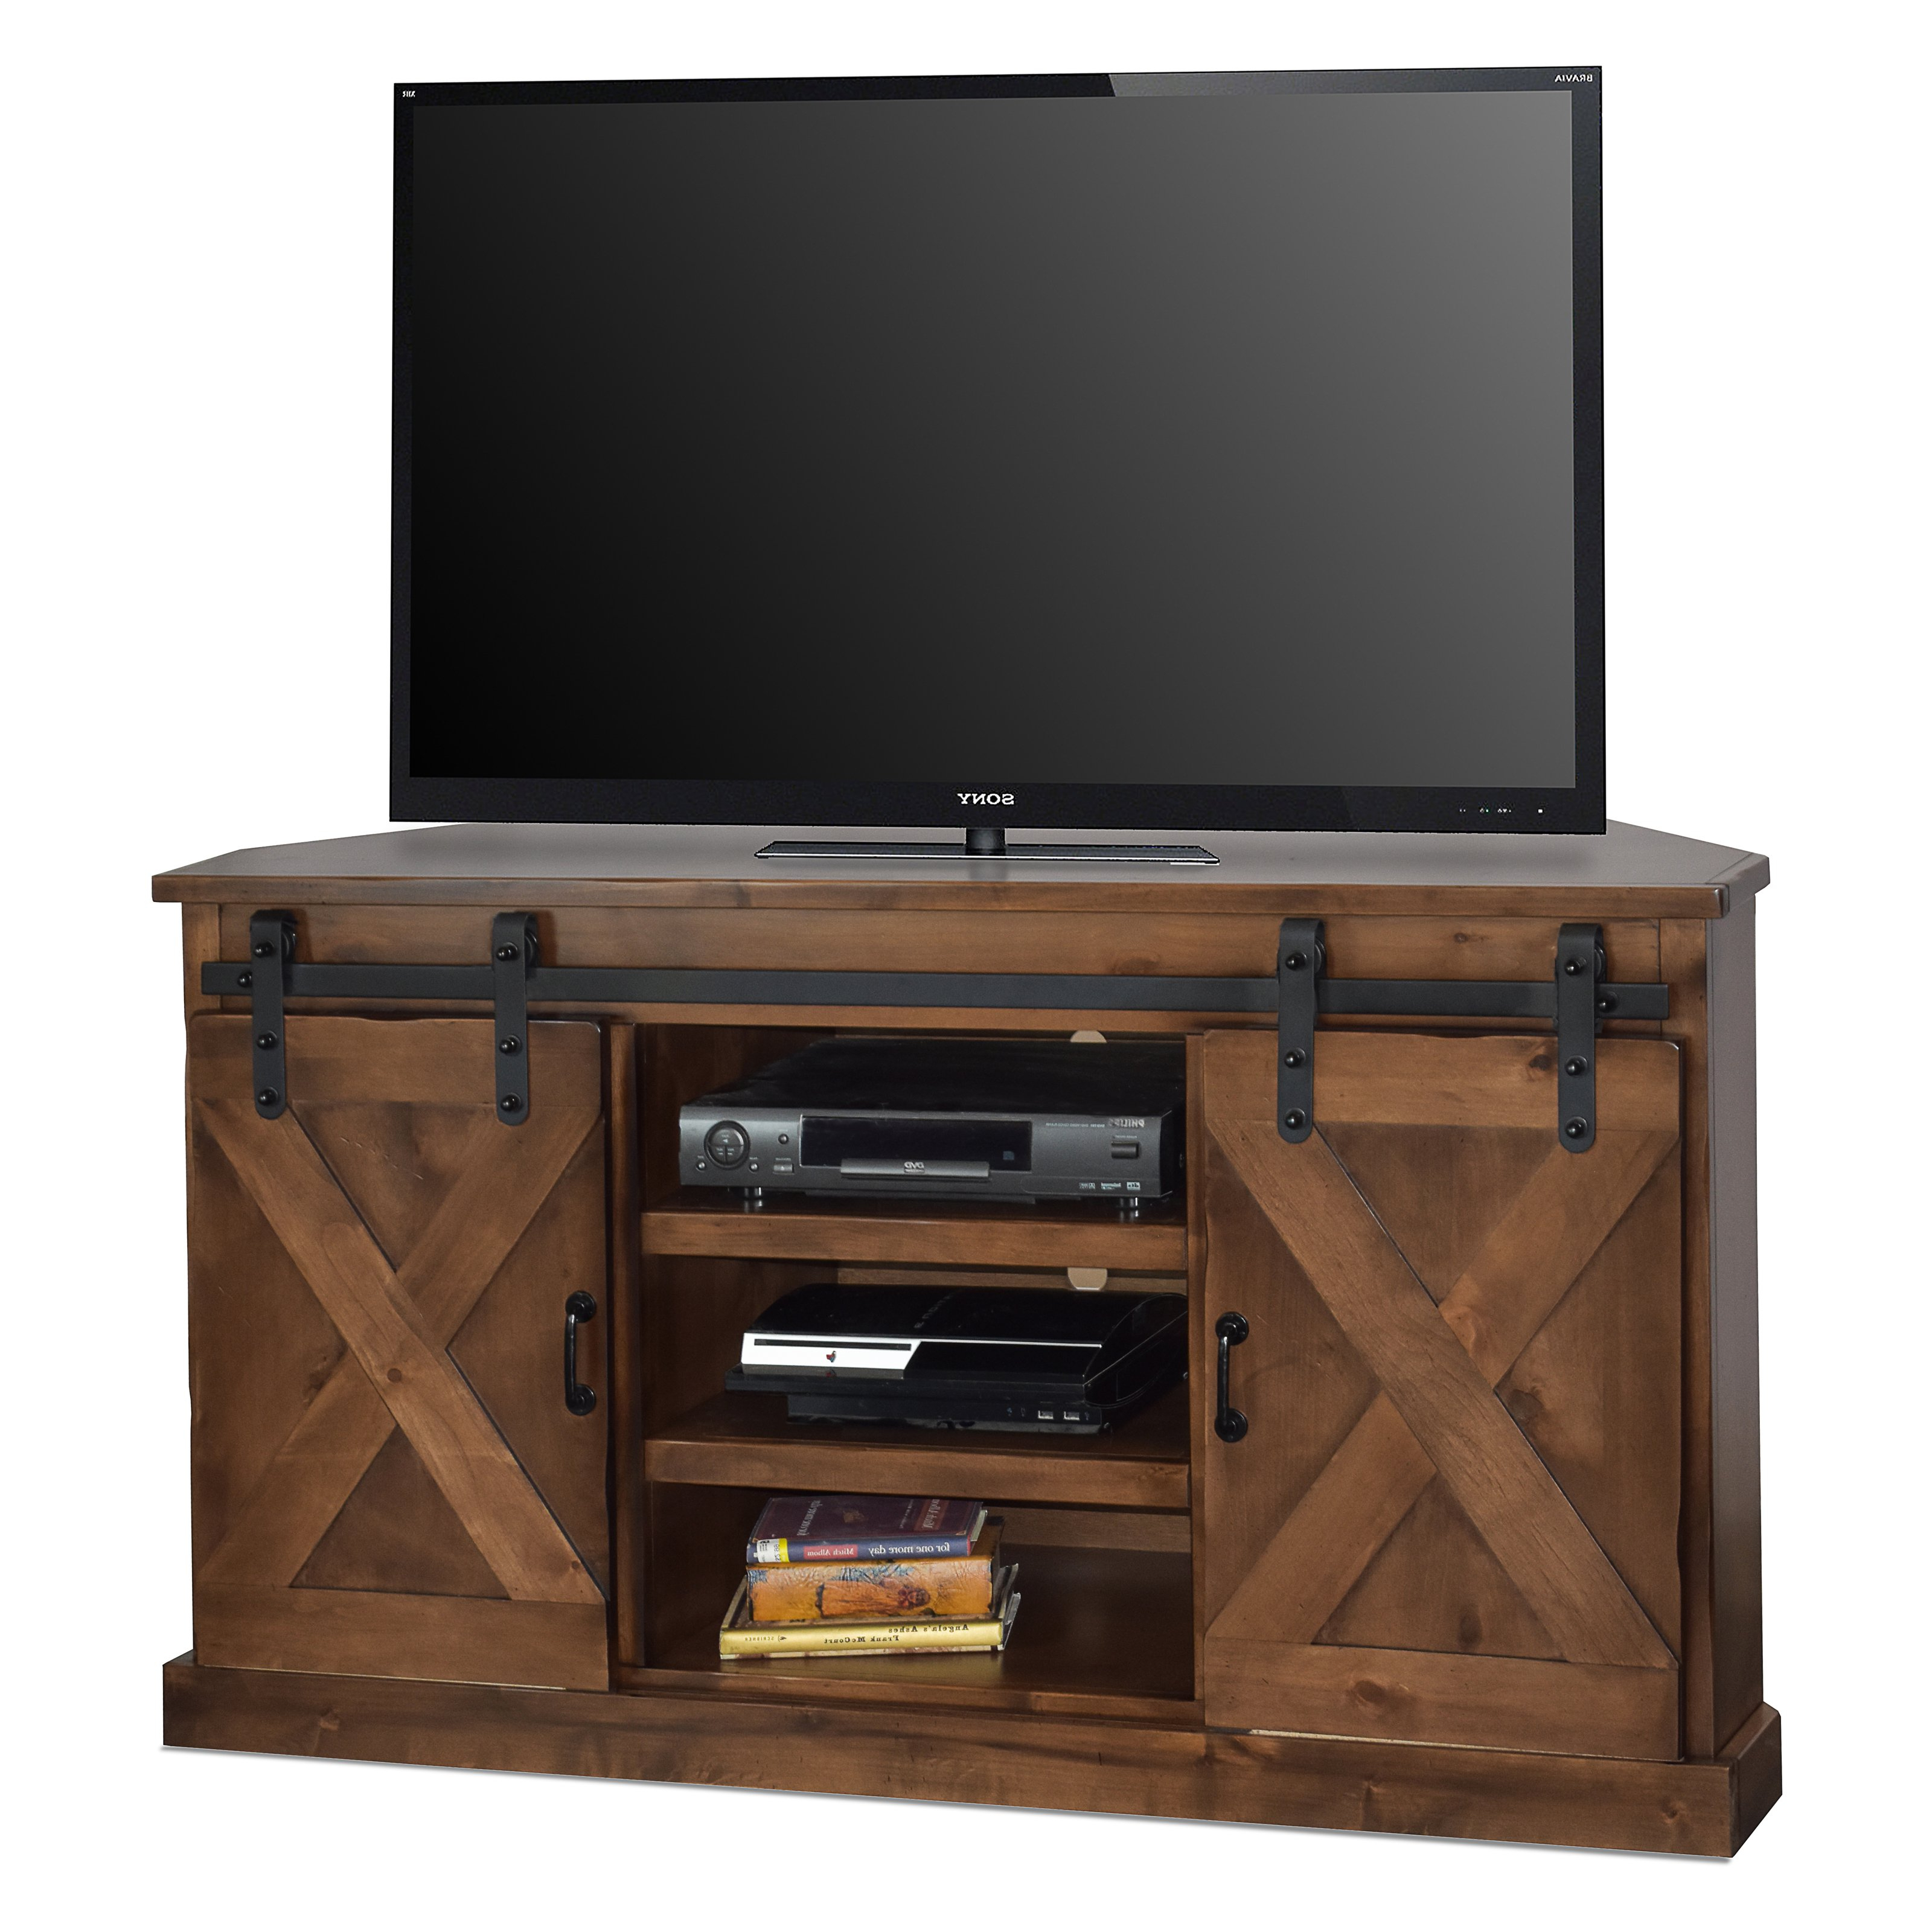 Tv Stands & Entertainment Centers | Hayneedle Regarding Century White 60 Inch Tv Stands (View 17 of 20)